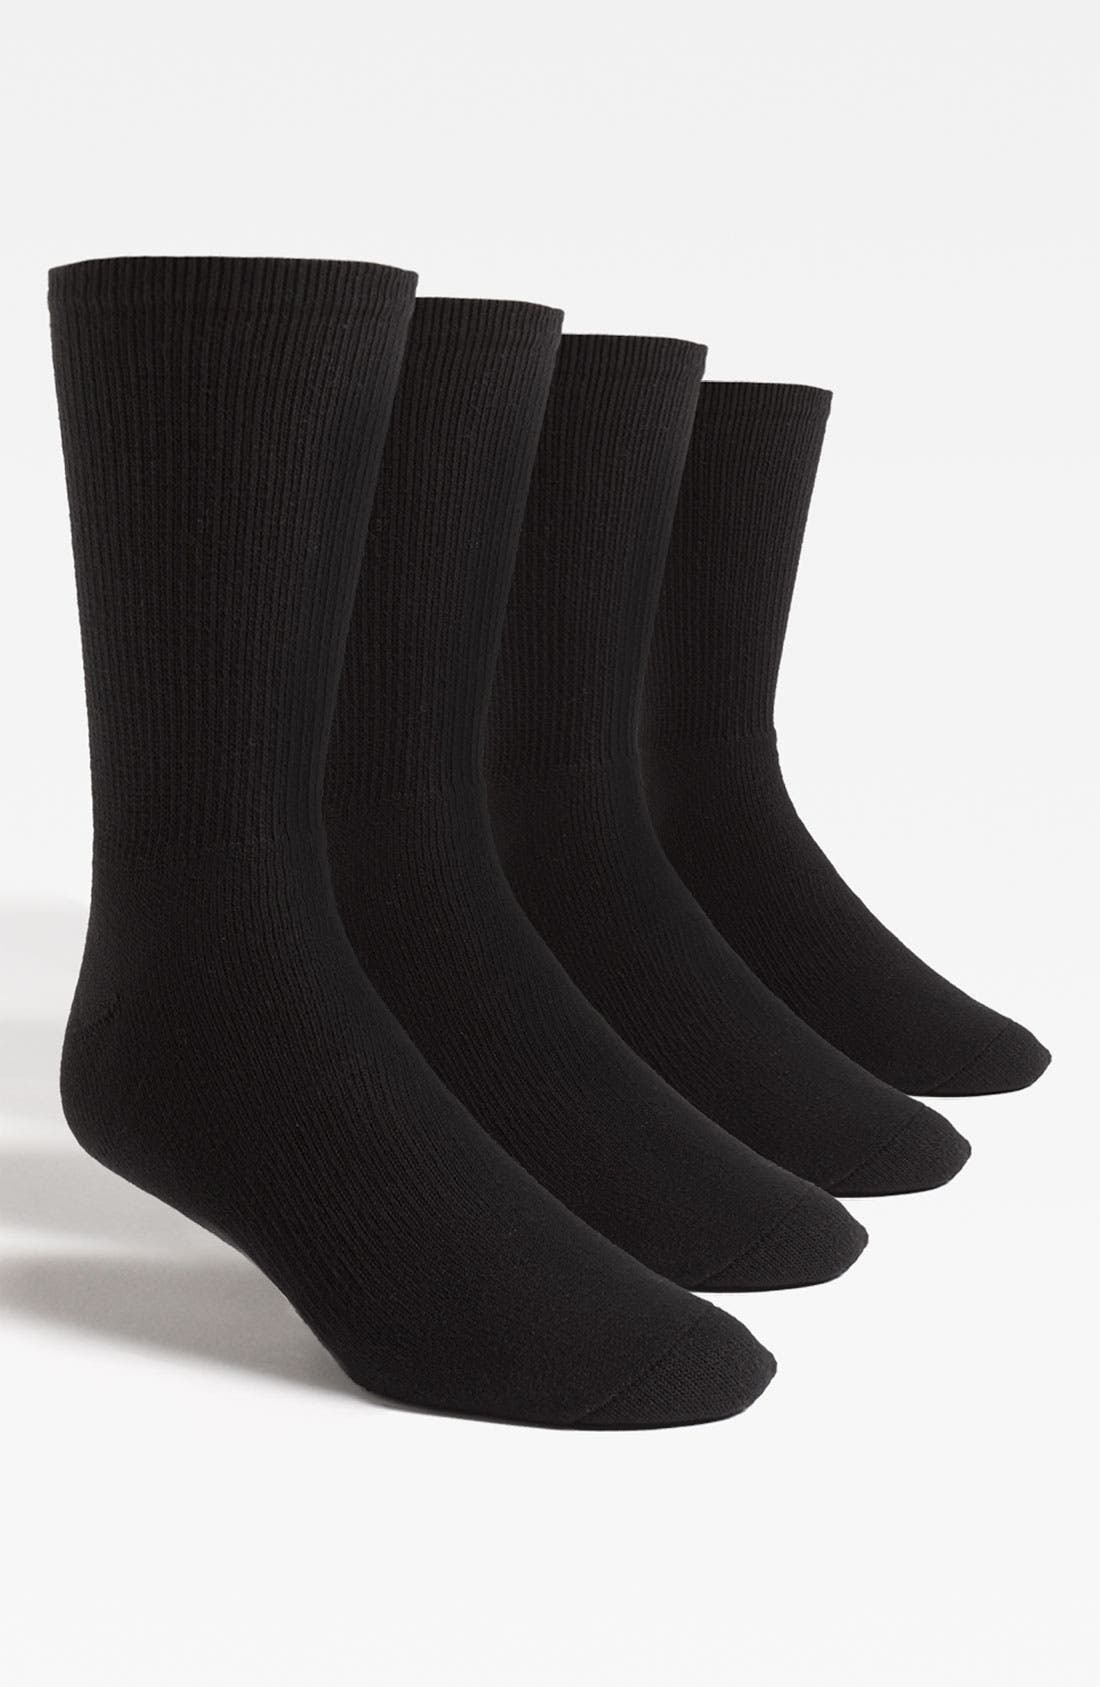 Main Image - Nordstrom Men's Shop King Size Crew Socks (4-Pack)